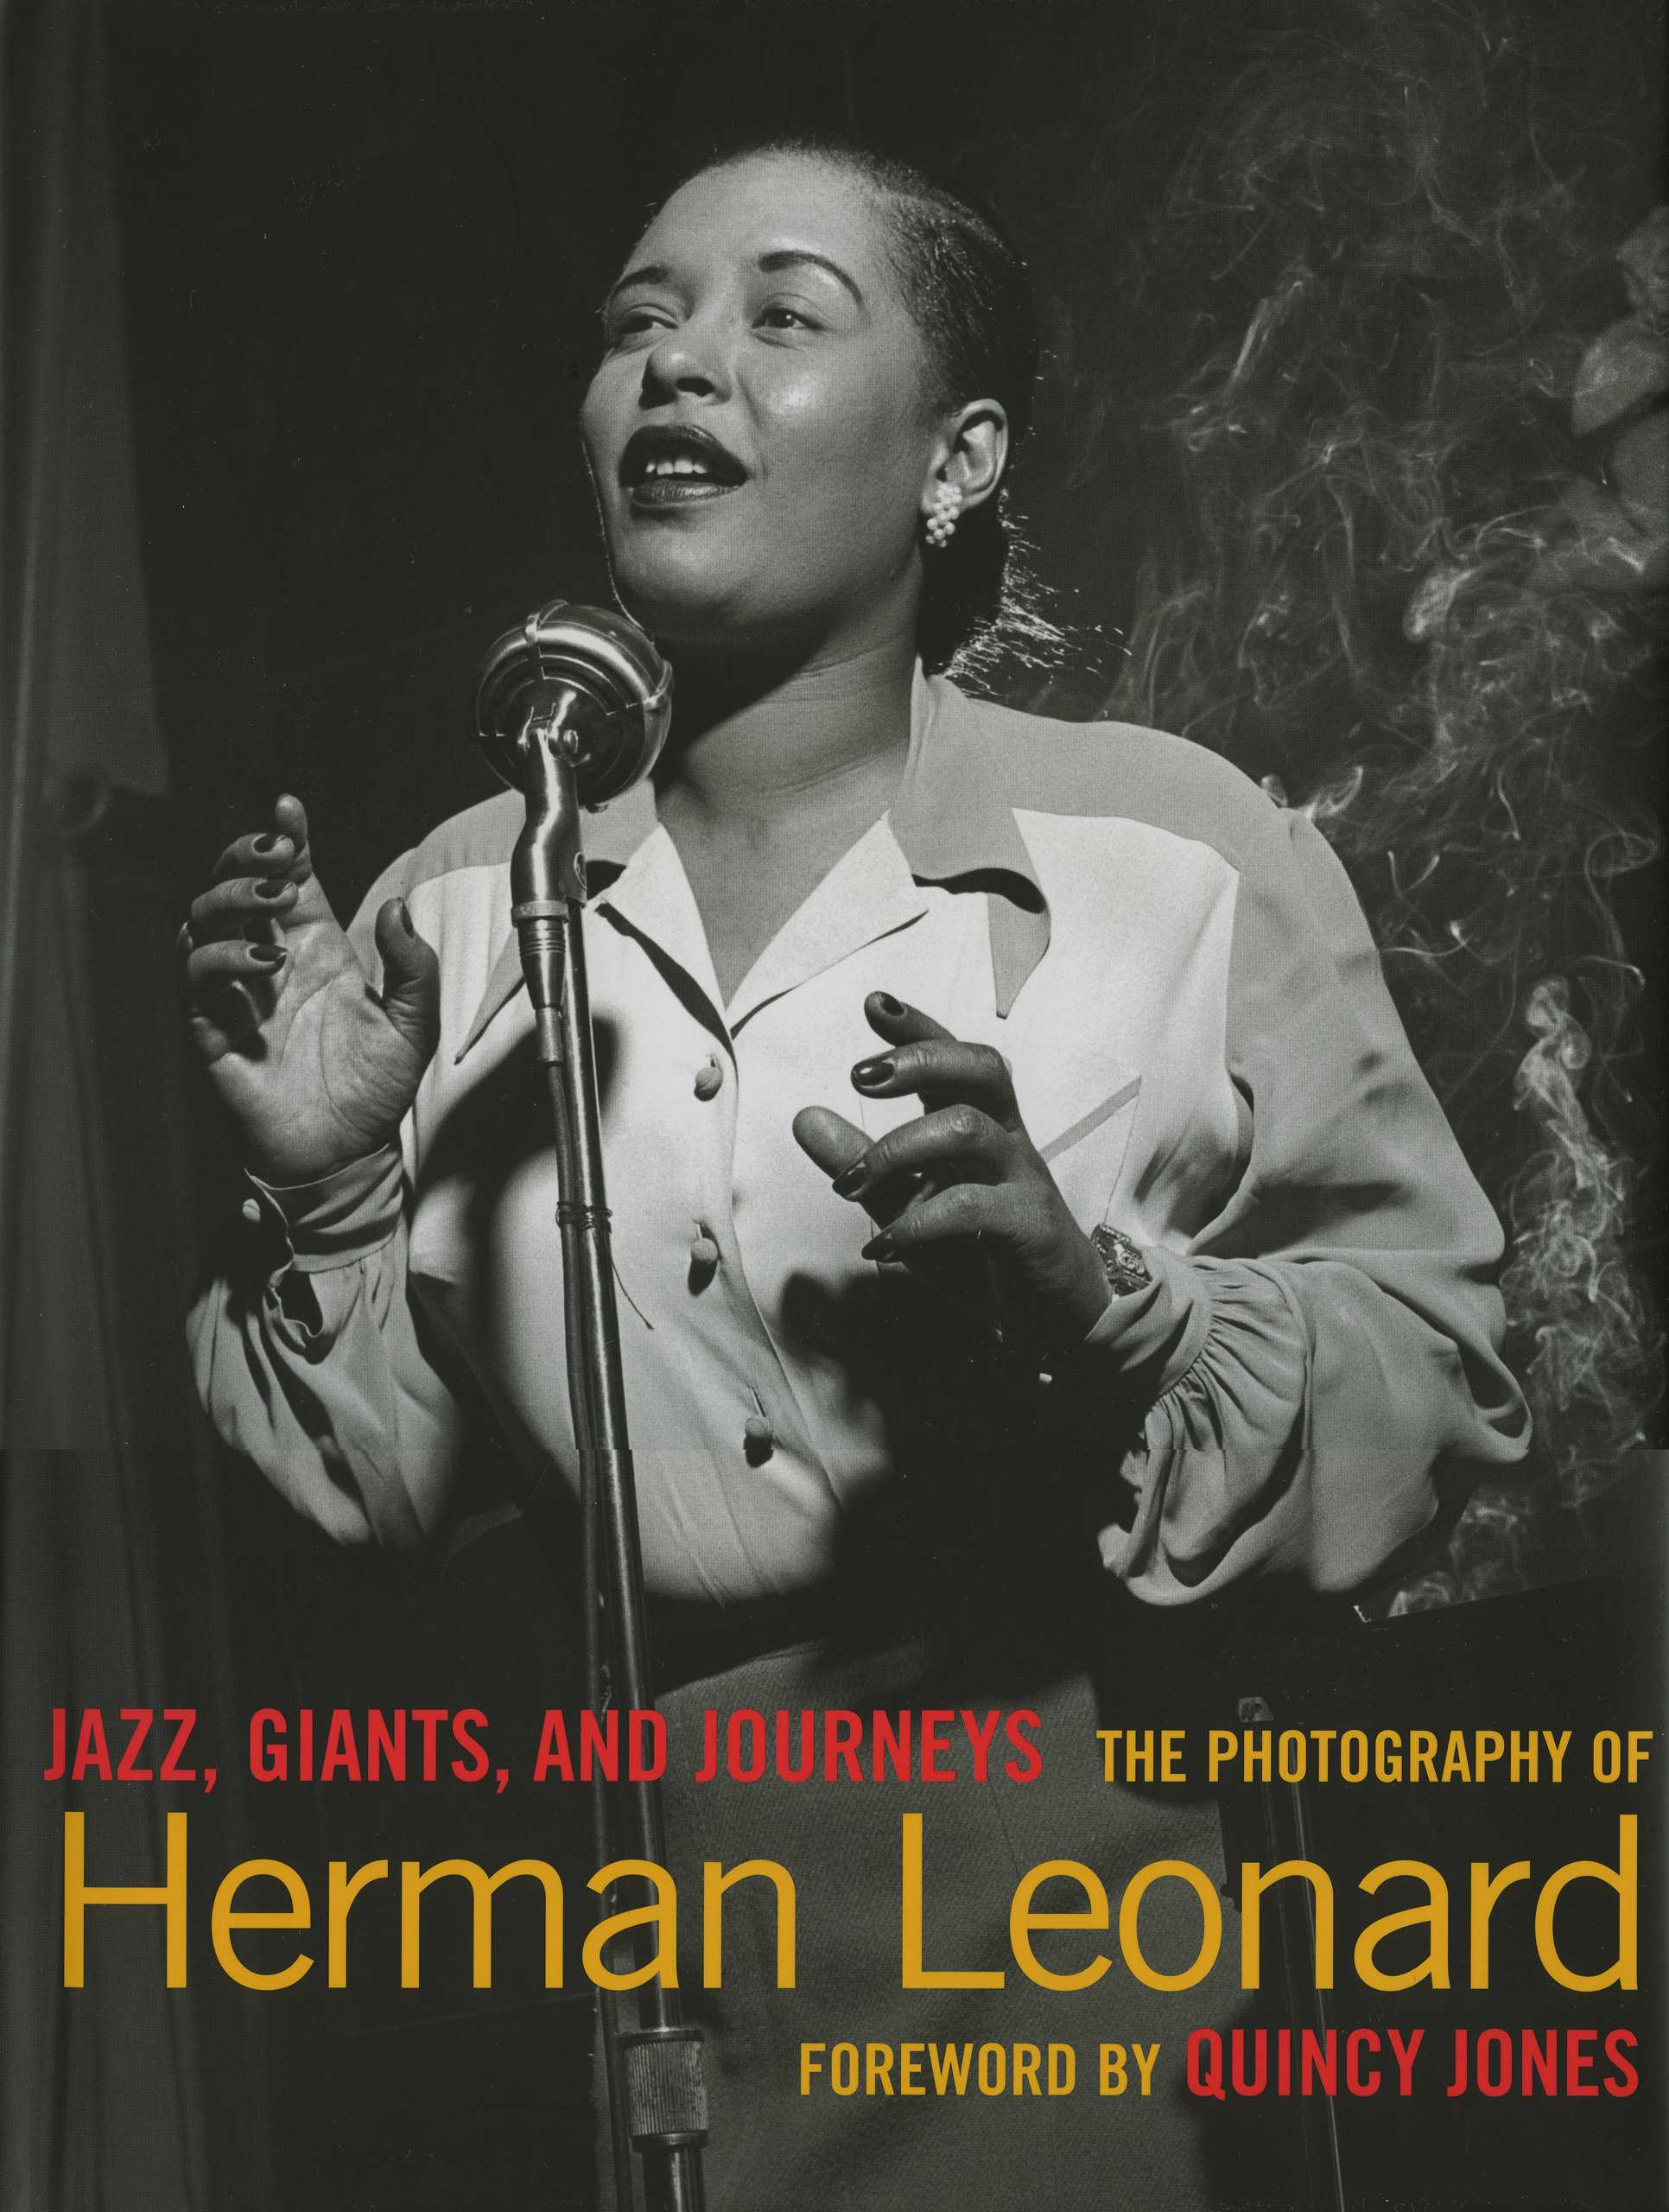 Jazz Giants and Journeys The Photography of Herman Leonard